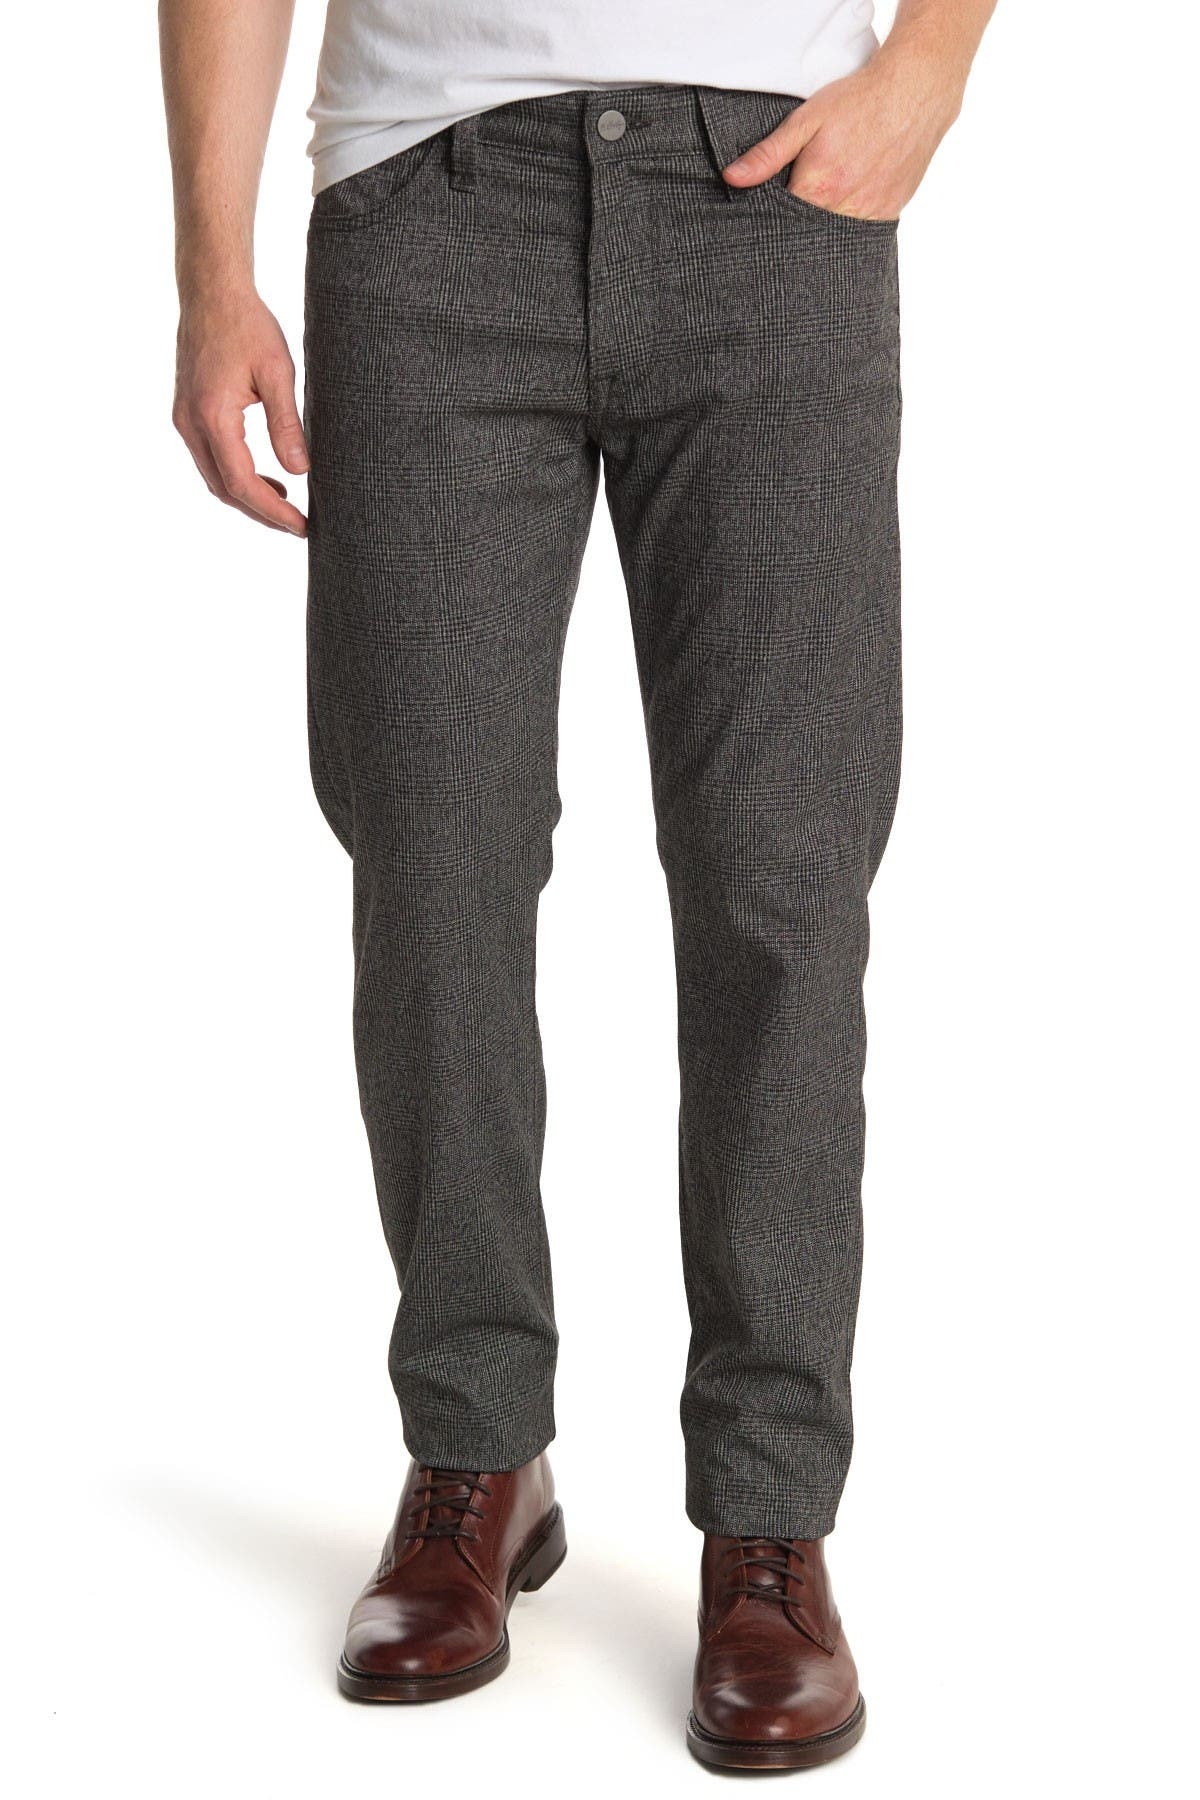 Image of 34 Heritage Courage Straight Leg Check Jeans